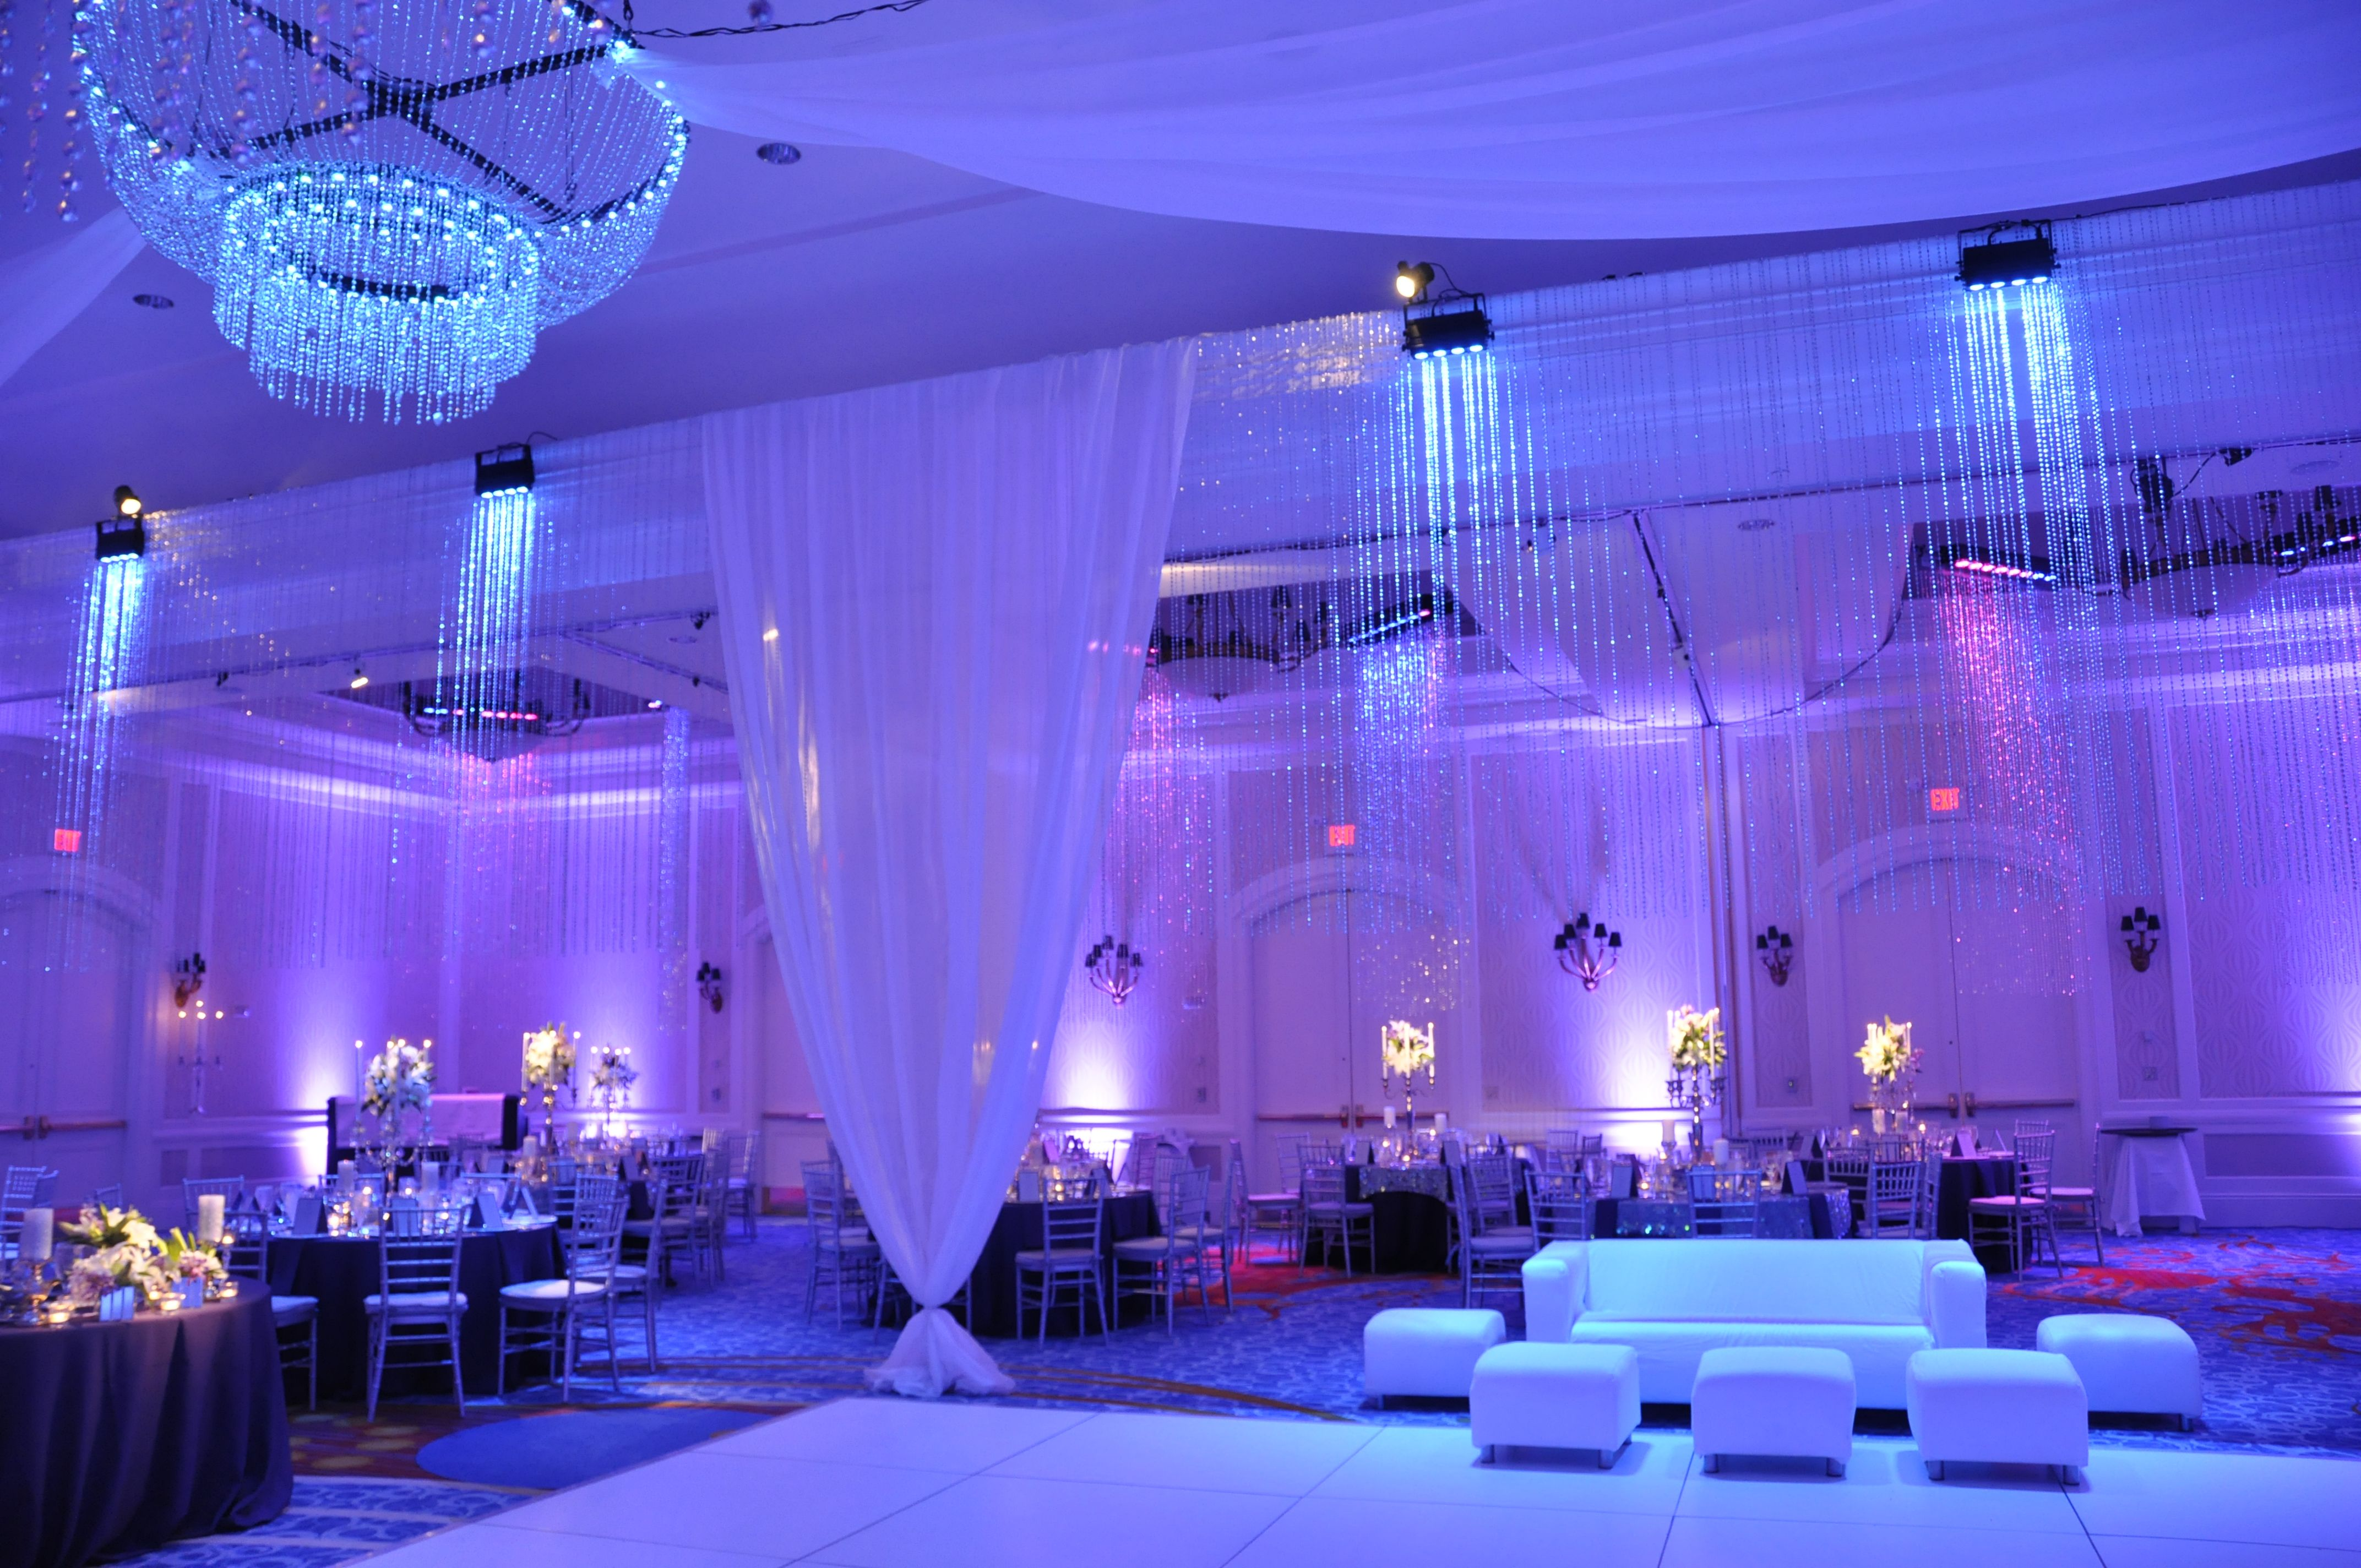 Dazian Beads Nuvoile Drapes And Led Regal Chandeliers Steel Lighting Design Steel Lighting Event Design Inspiration